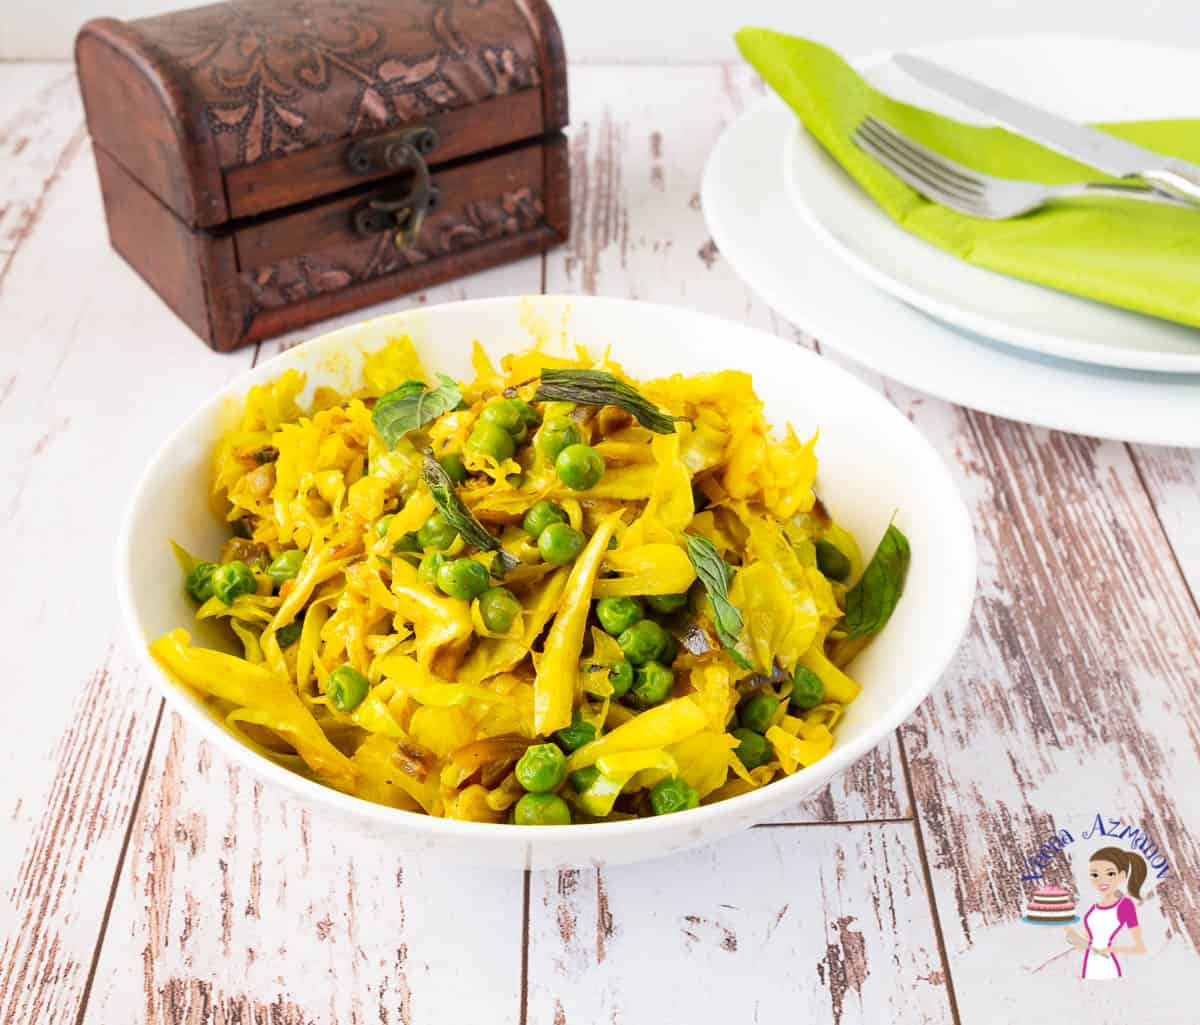 How to make Cabbage for a side dish with turmeric and peas